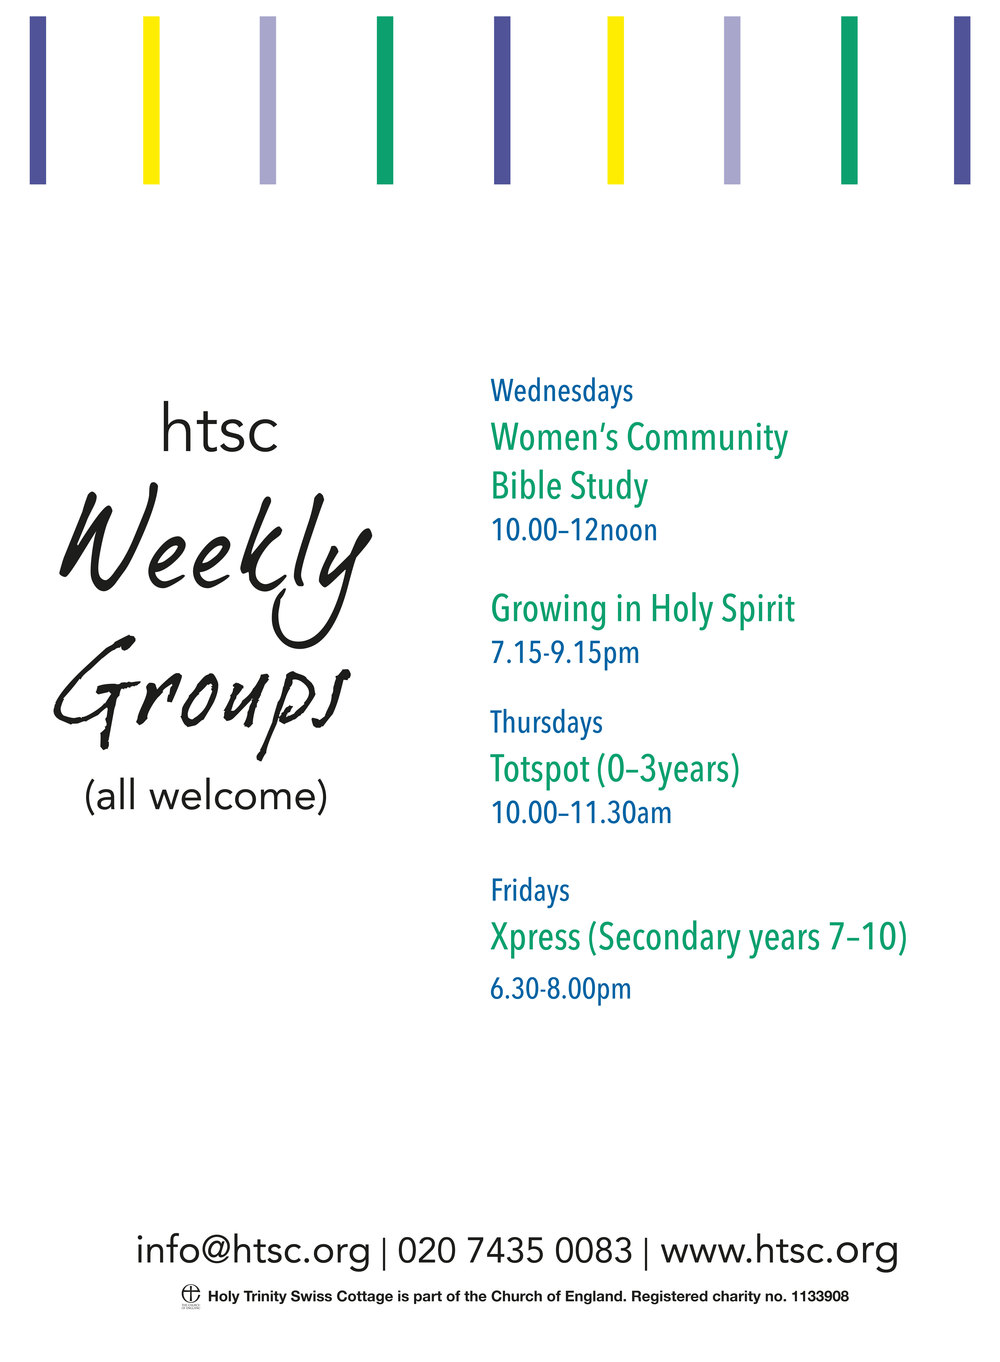 HTSC-Weekly-Groups_web.jpg